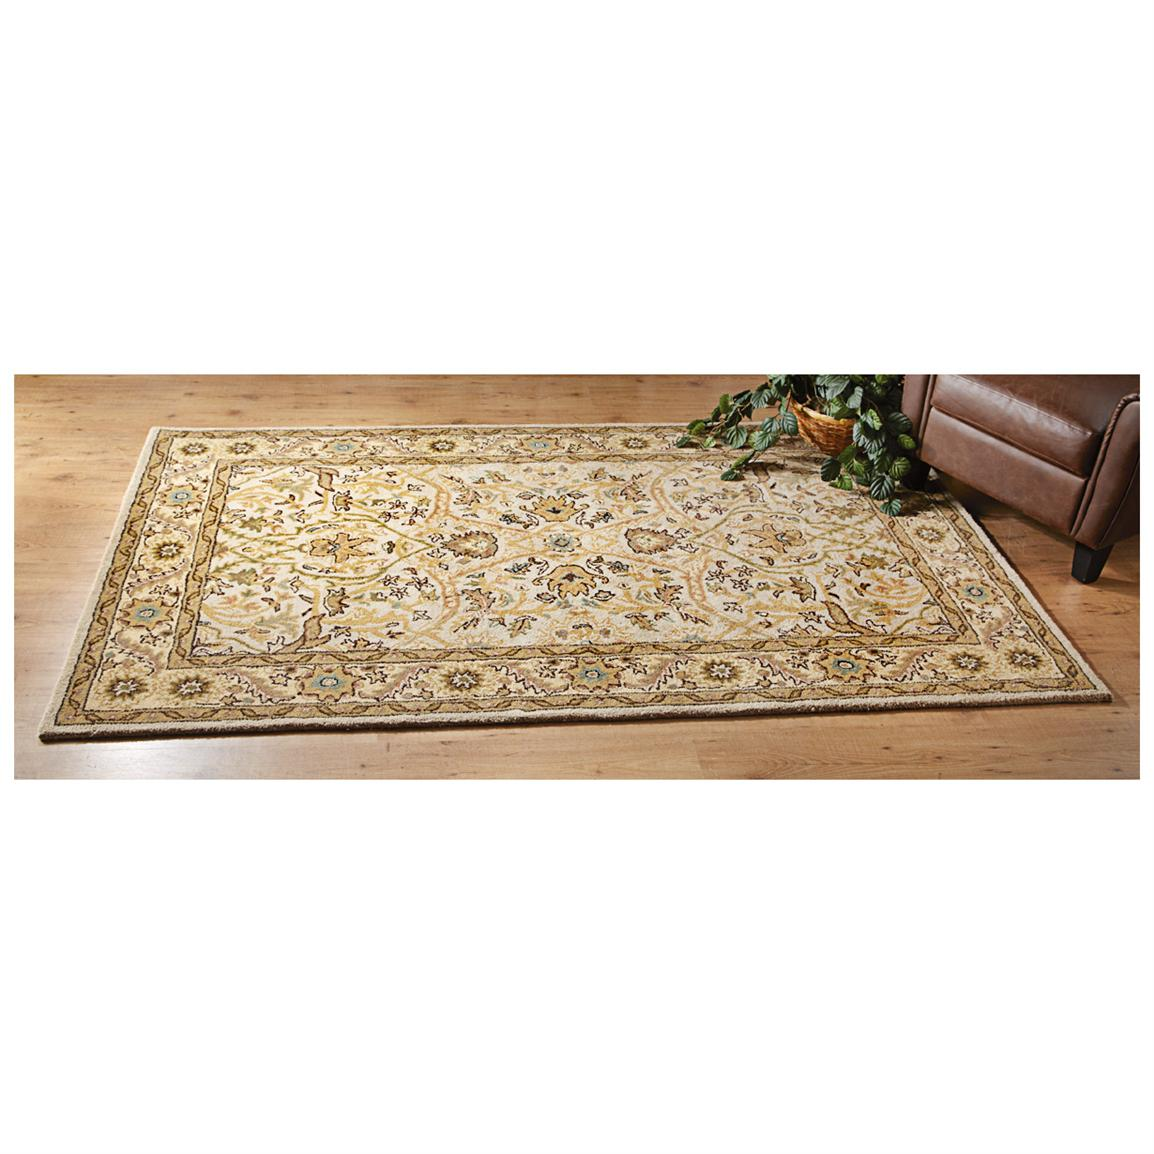 Wool Rug, Ivory / Gold